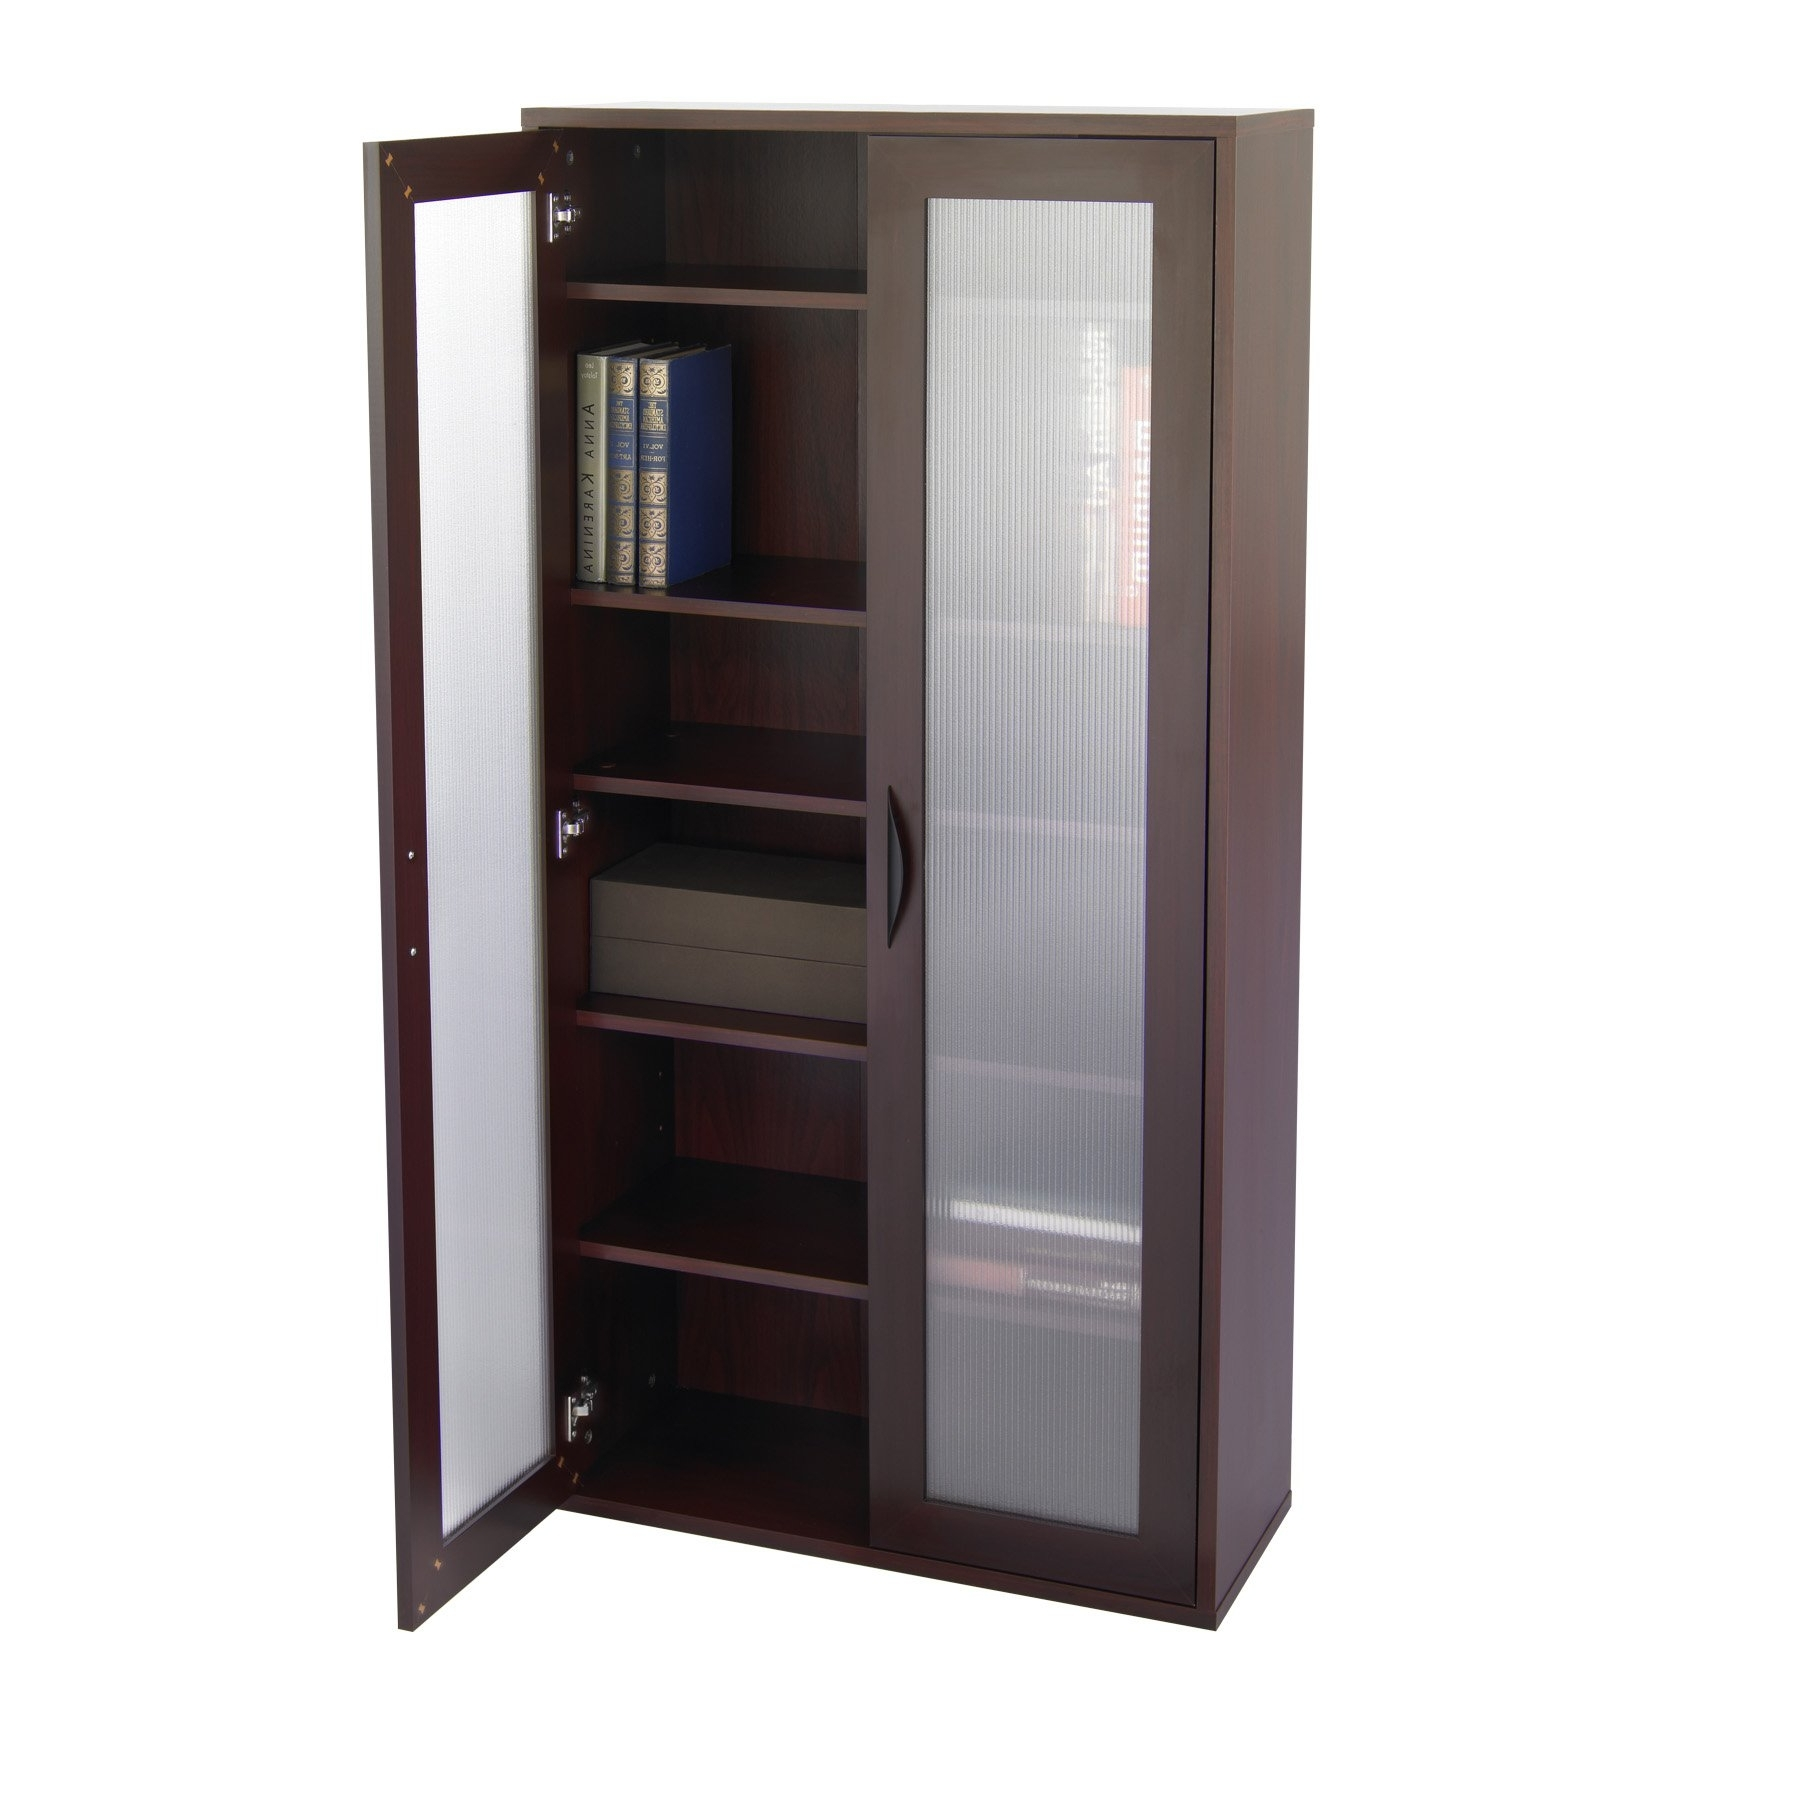 Famous White Bookcases With Glass Doors Within Storage Bookcase With Glass Doors Tall – Mahogany (View 8 of 15)